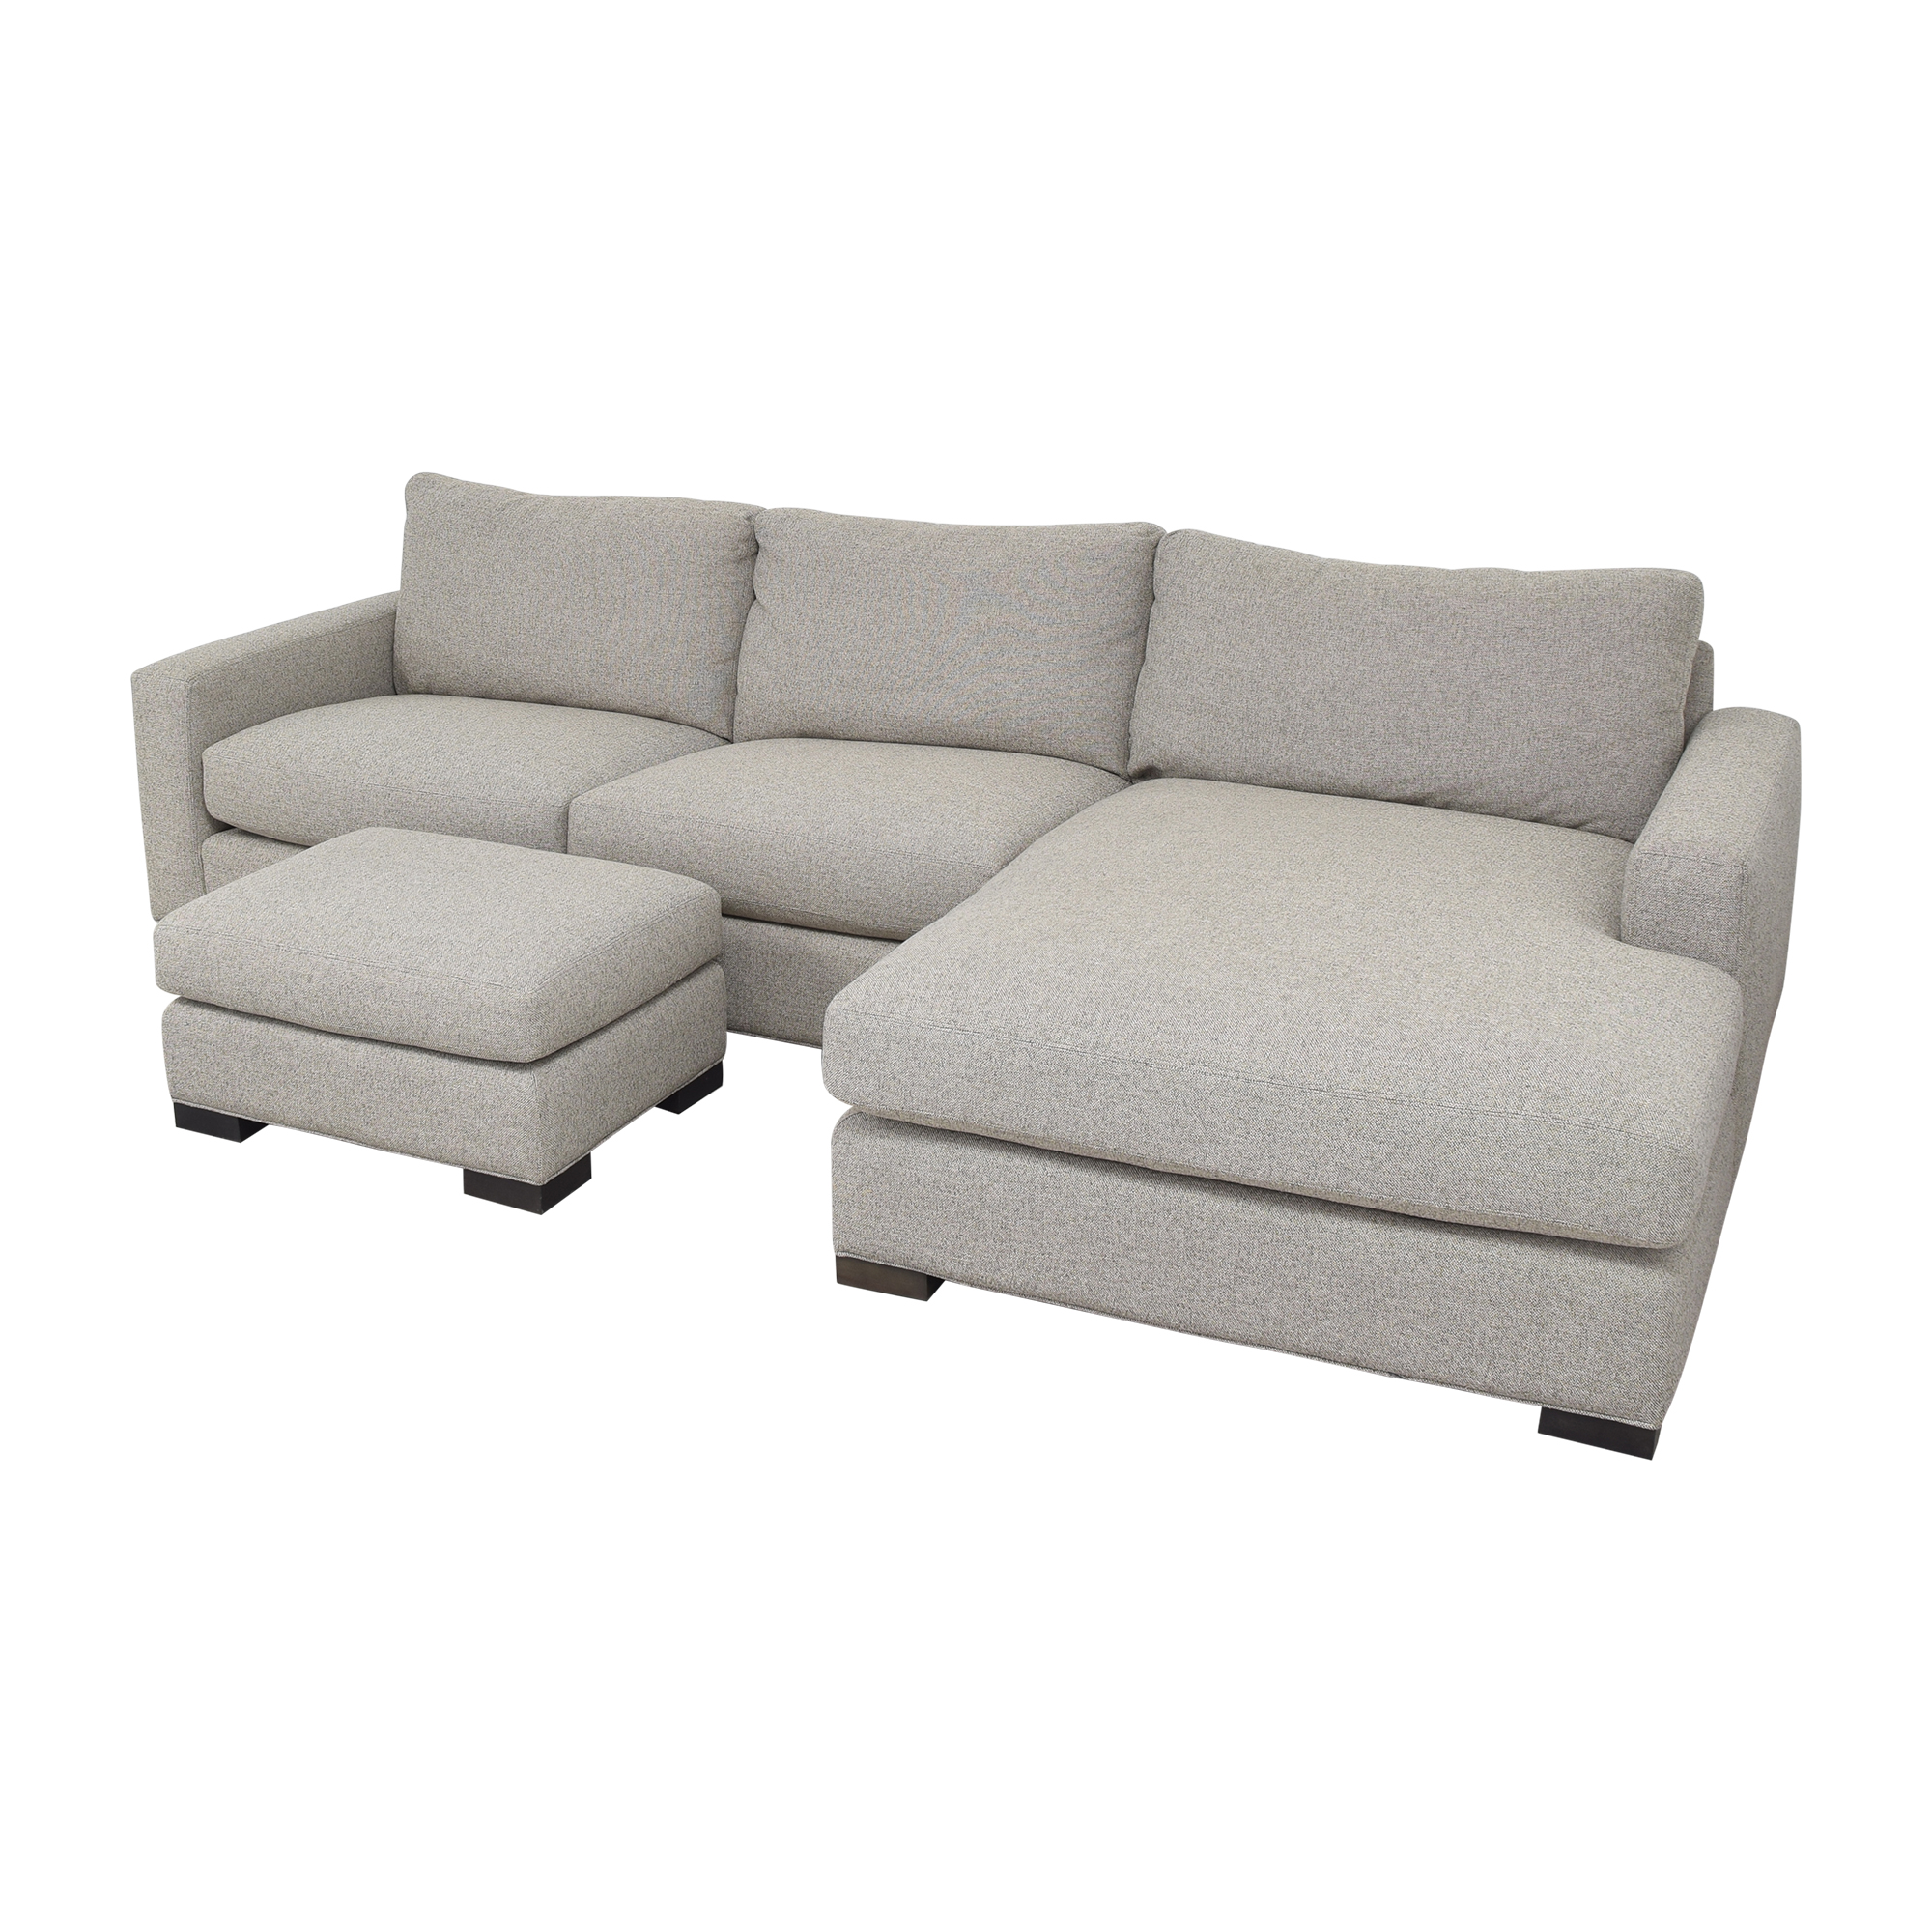 shop Room & Board Metro Chaise Sectional Sofa and Ottoman Room & Board